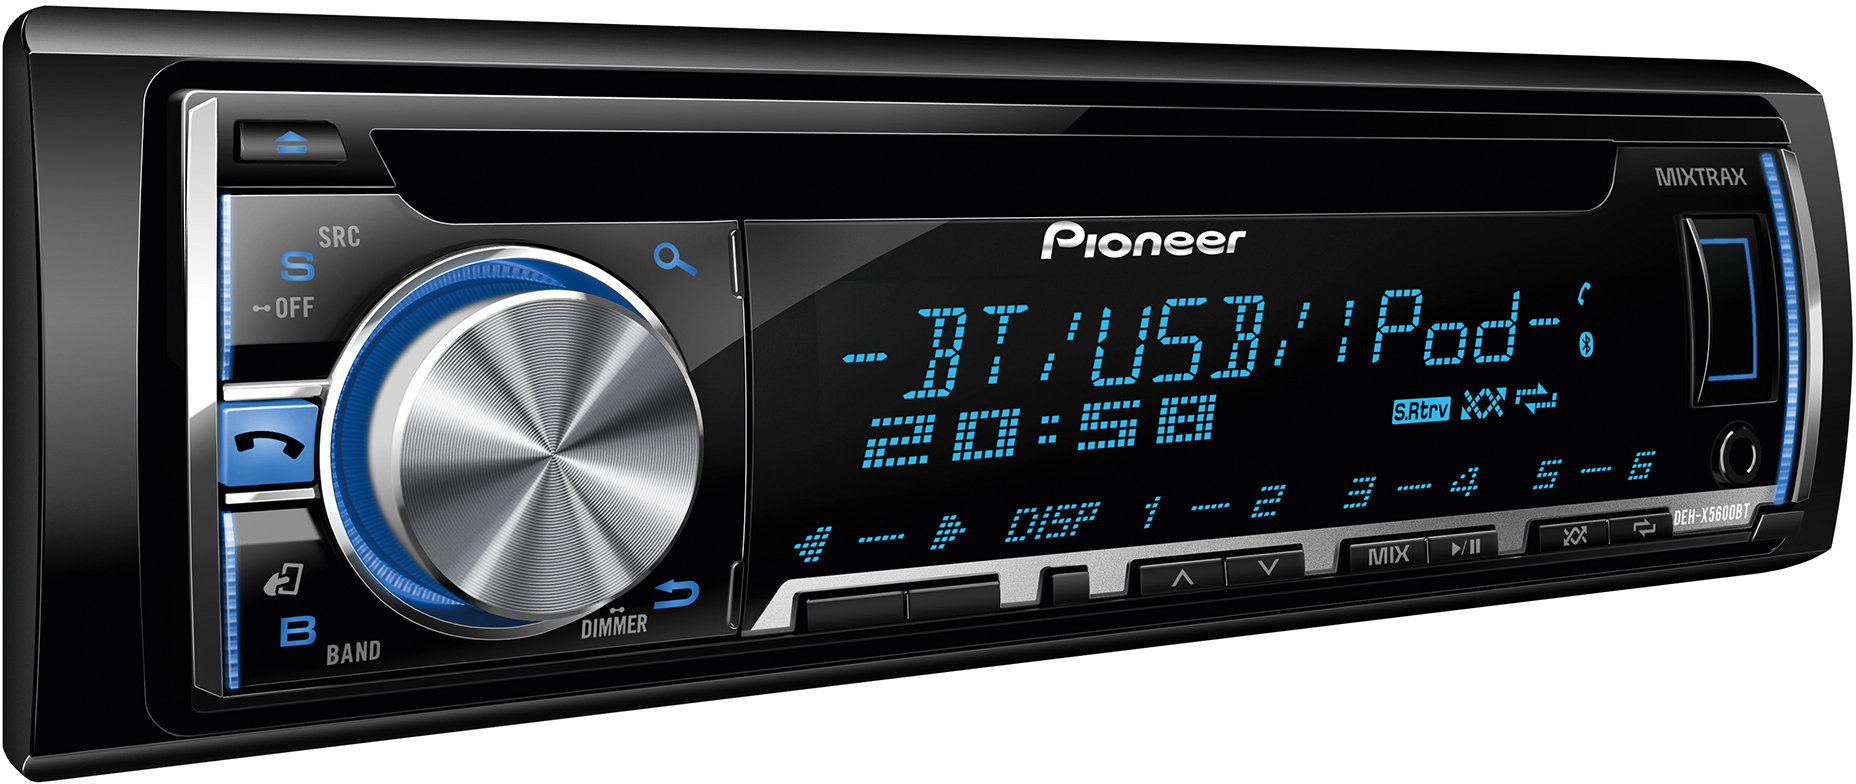 Pioneer In-Dash Car GPS Navigation Car Stereos Radios Car